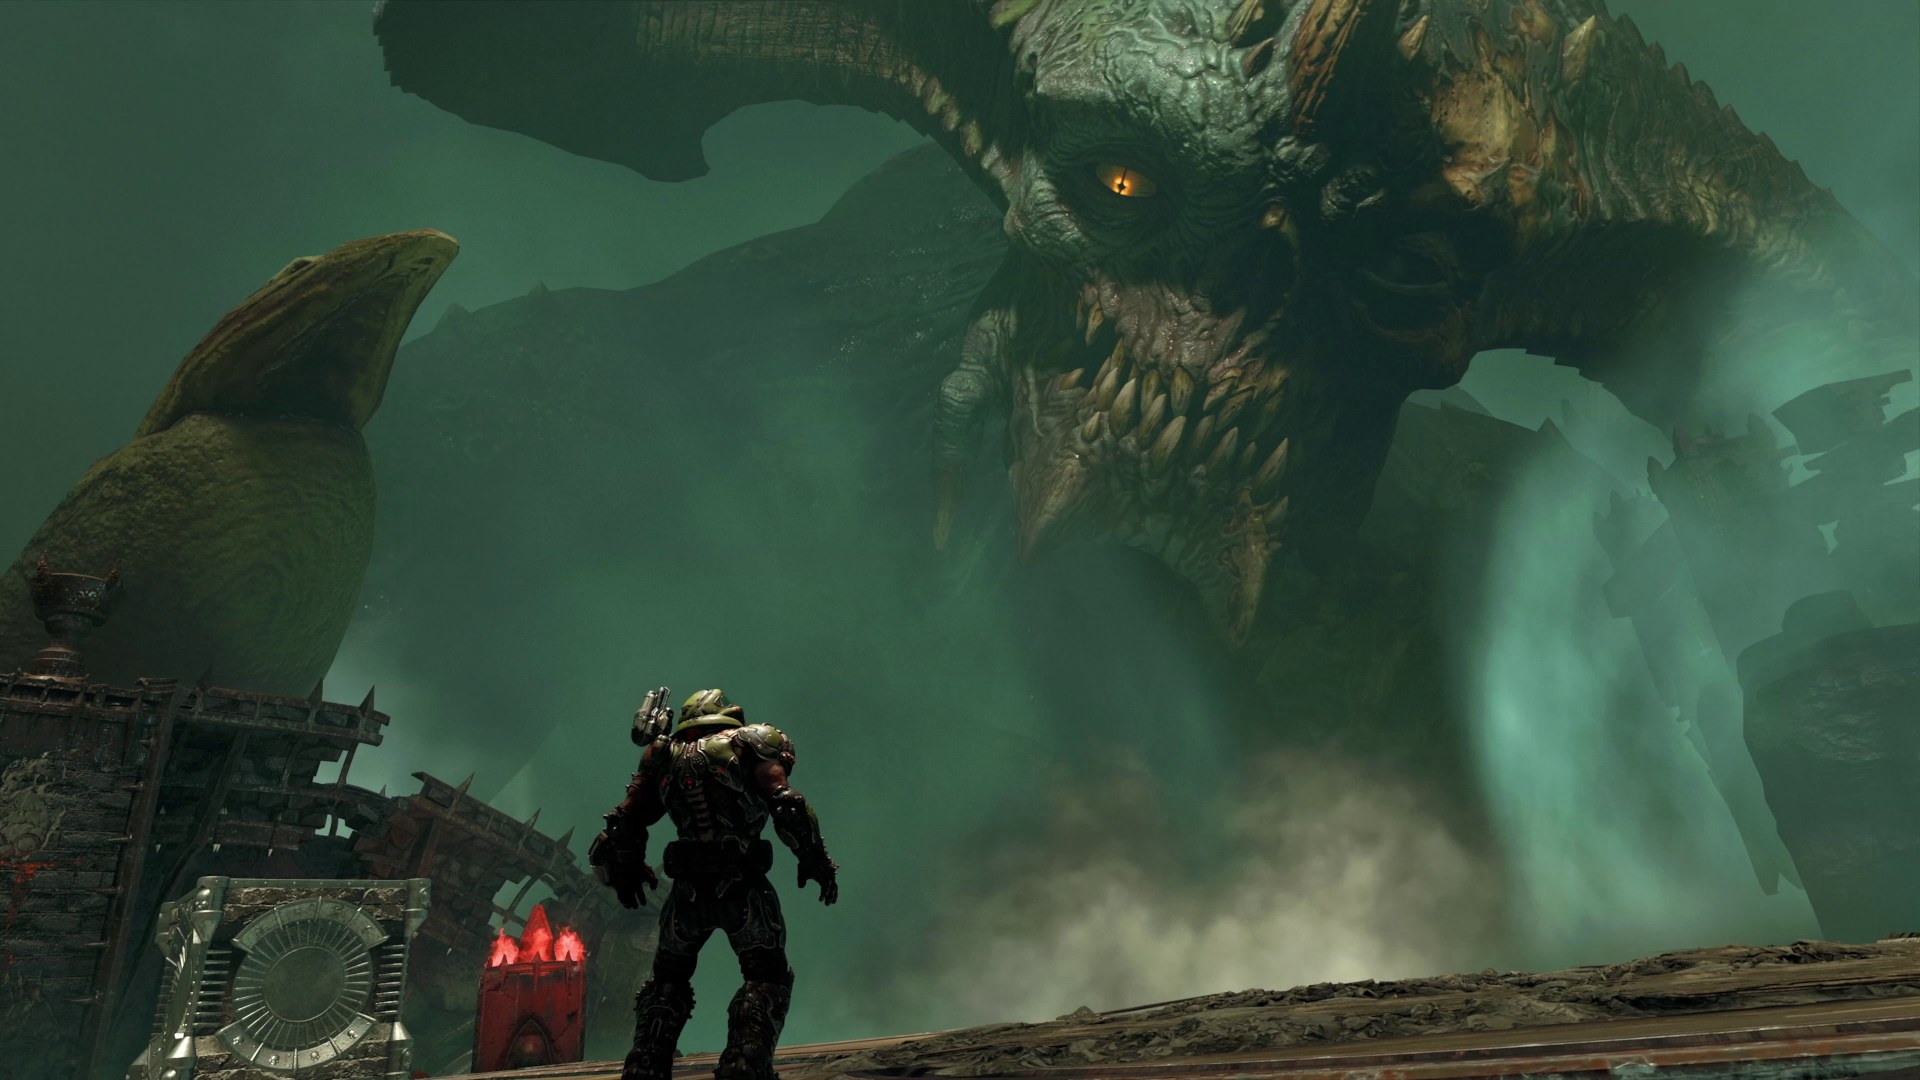 A giant horny lad dwarfs Doomguy in a Doom Eternal: The Ancient Gods picture.